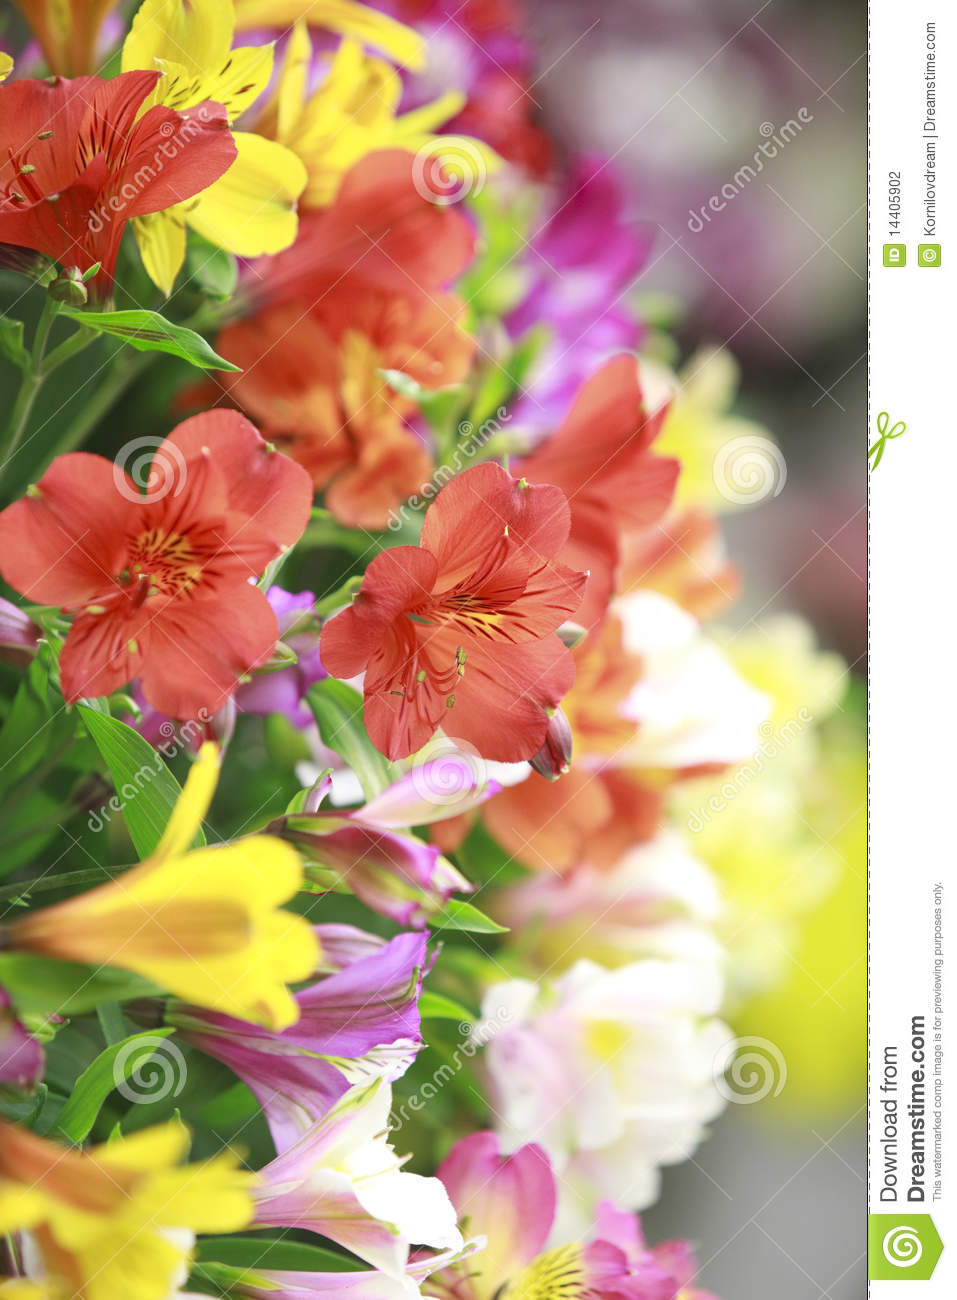 Flowers bouquet stock photography image 14405902 for A lot of different flowers make a bouquet